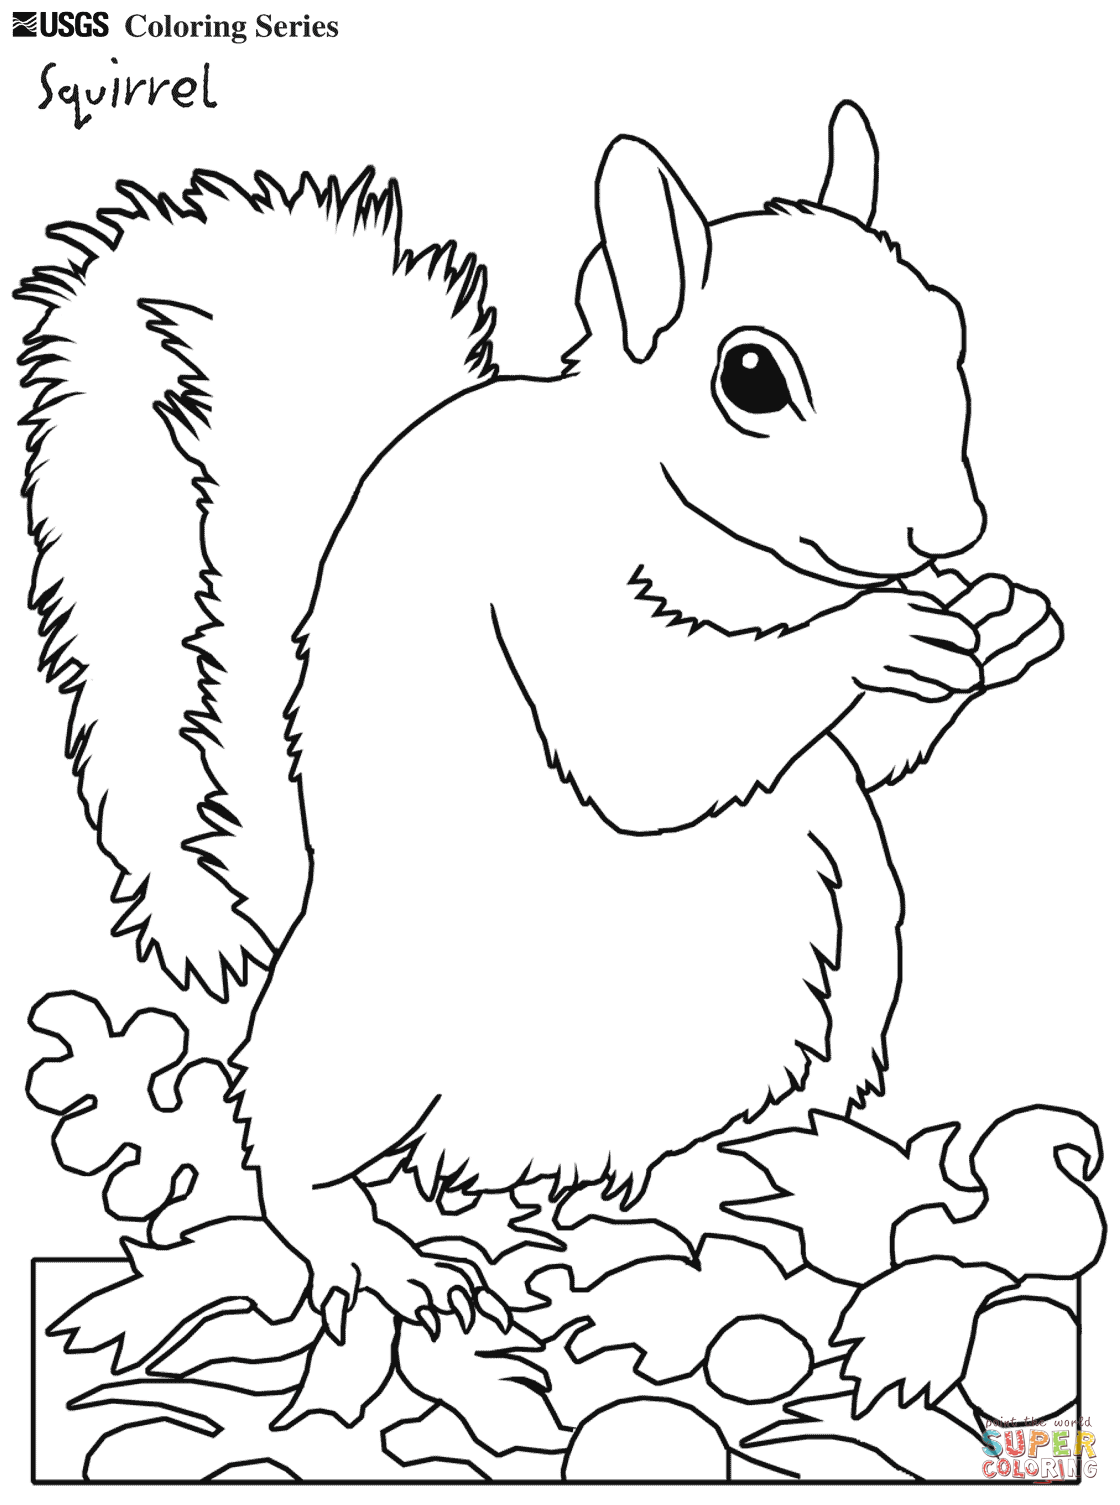 Gray Squirrel coloring #10, Download drawings